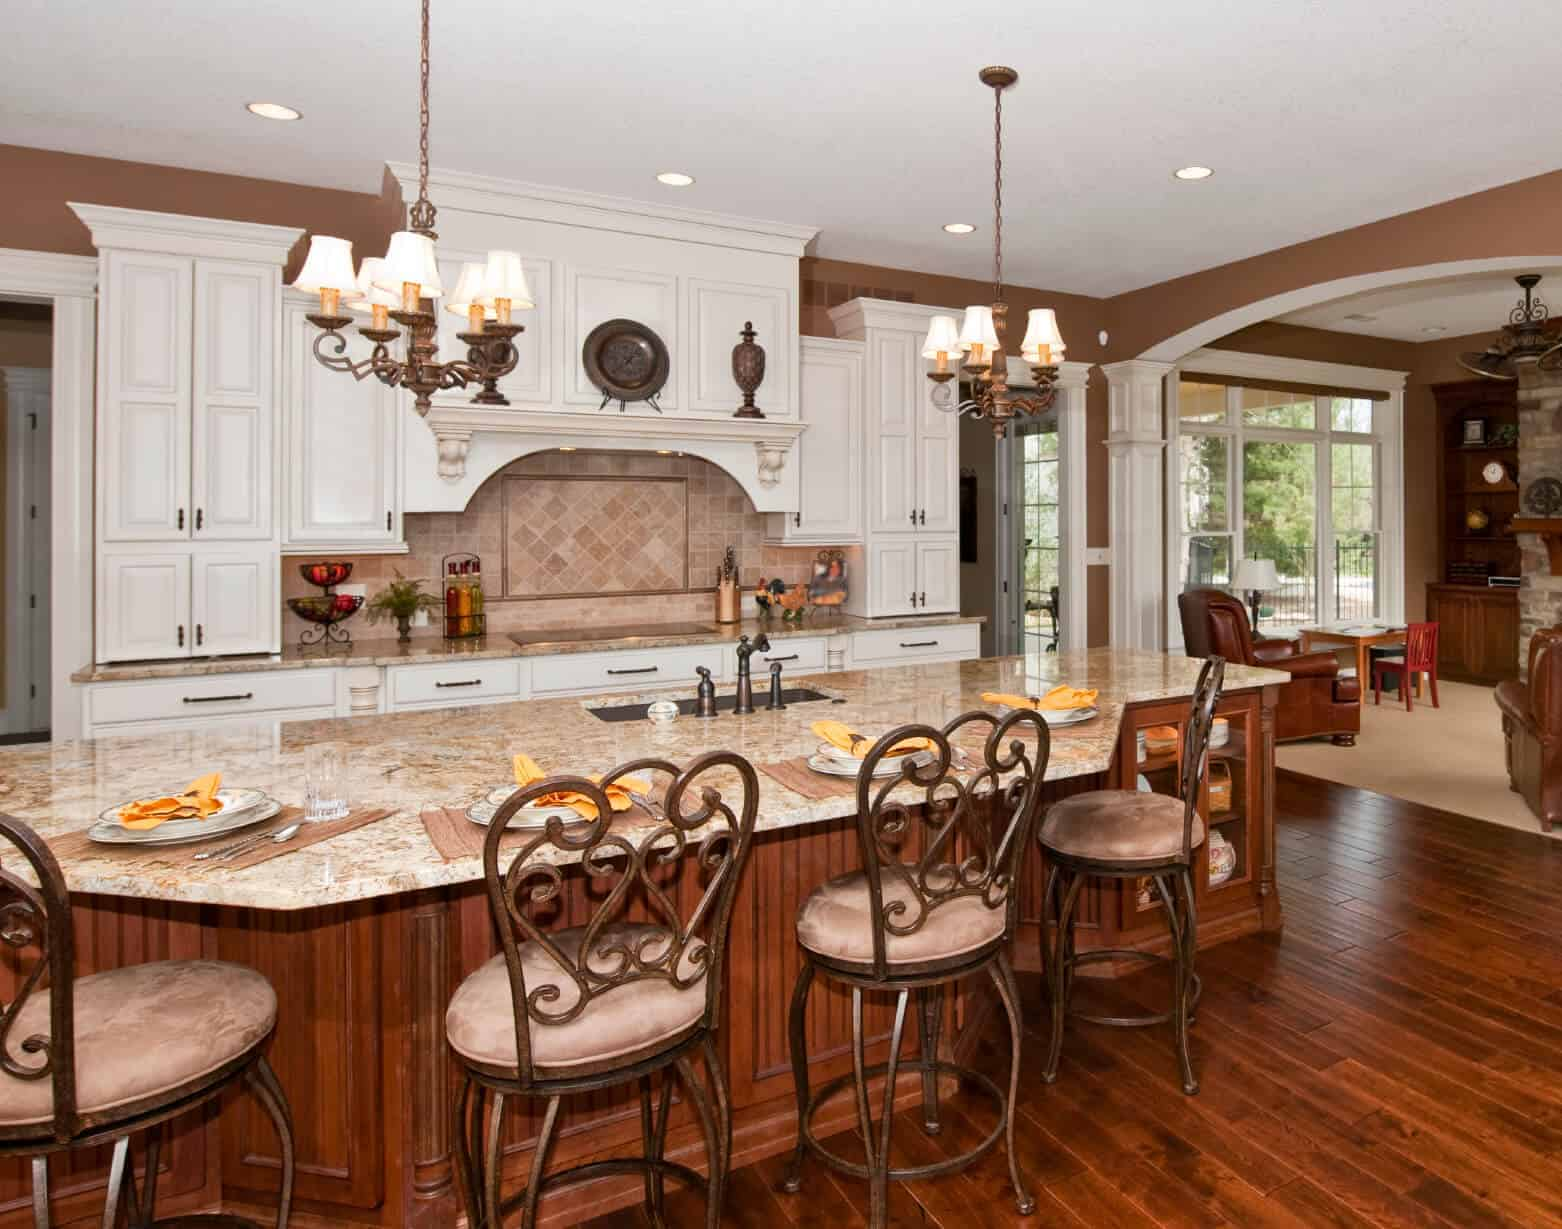 Luxury custom design in a large, open kitchen features immense island done in natural wood tones, with built-in glass cabinetry, dining area, and full sink on a marble countertop.